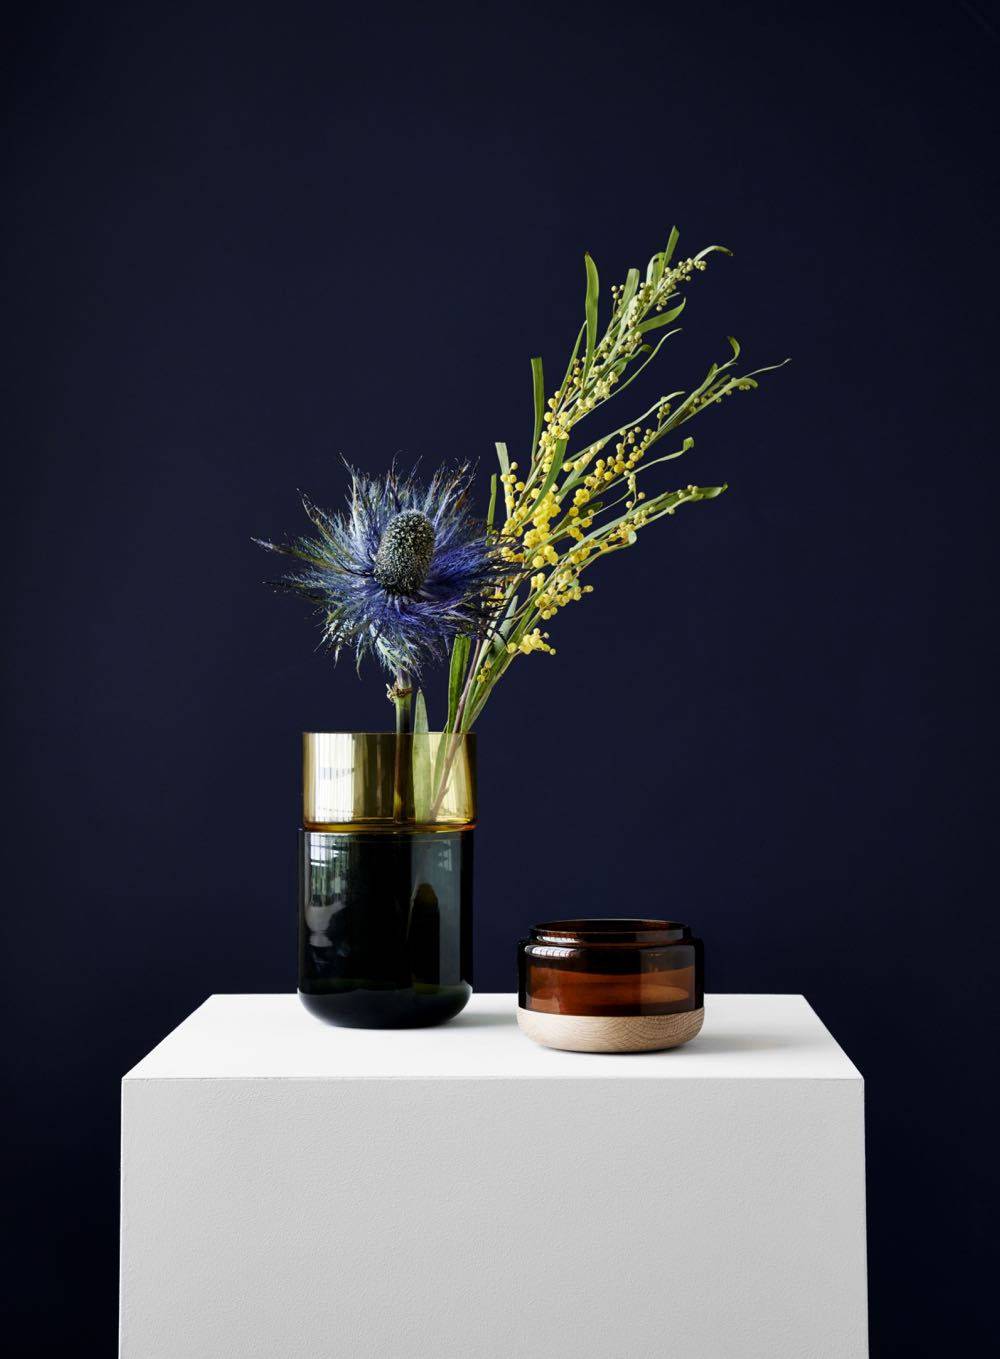 'Pi-No-Pi-No' vessels by Tuukka Tujula and Maija Puoskari for New Works. The stacking design can be vase or container. Made from timber glass and ceramic or metals such as brass or copper the playful combinations can be mixed and matched.